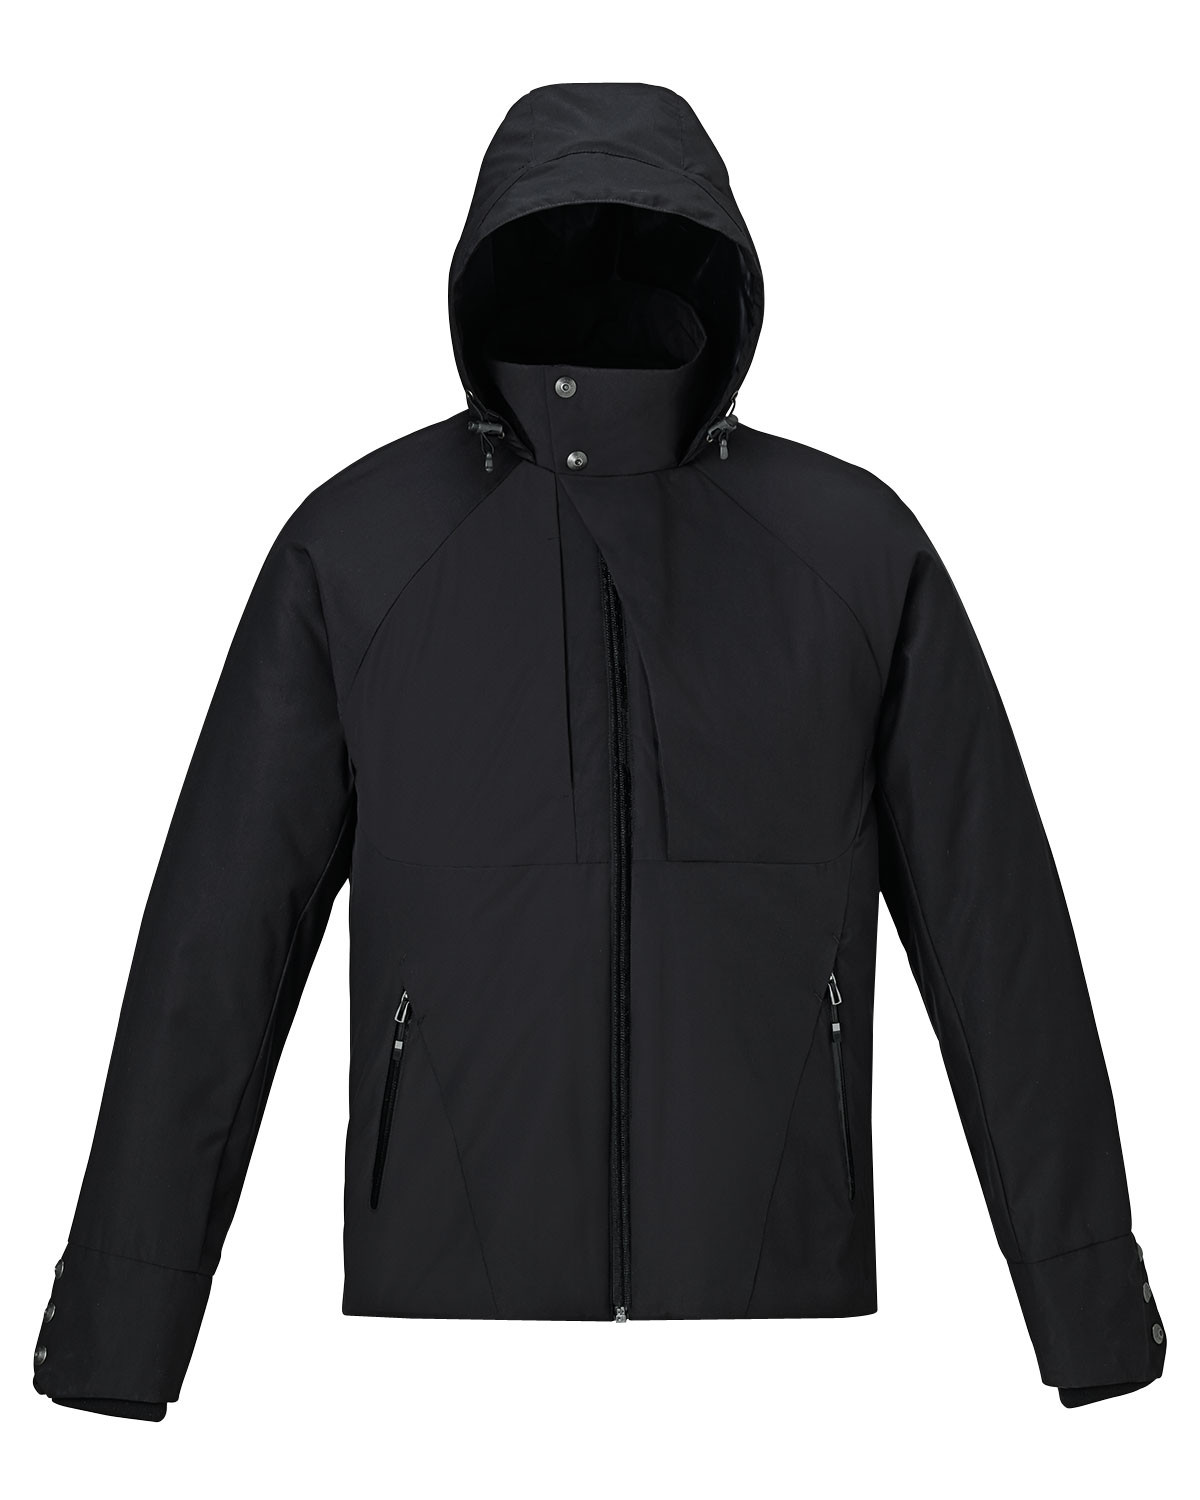 Ash City Insulated 88685 - Skyline Men's City Twill Insulated Jacket With Heat Reflect Technology